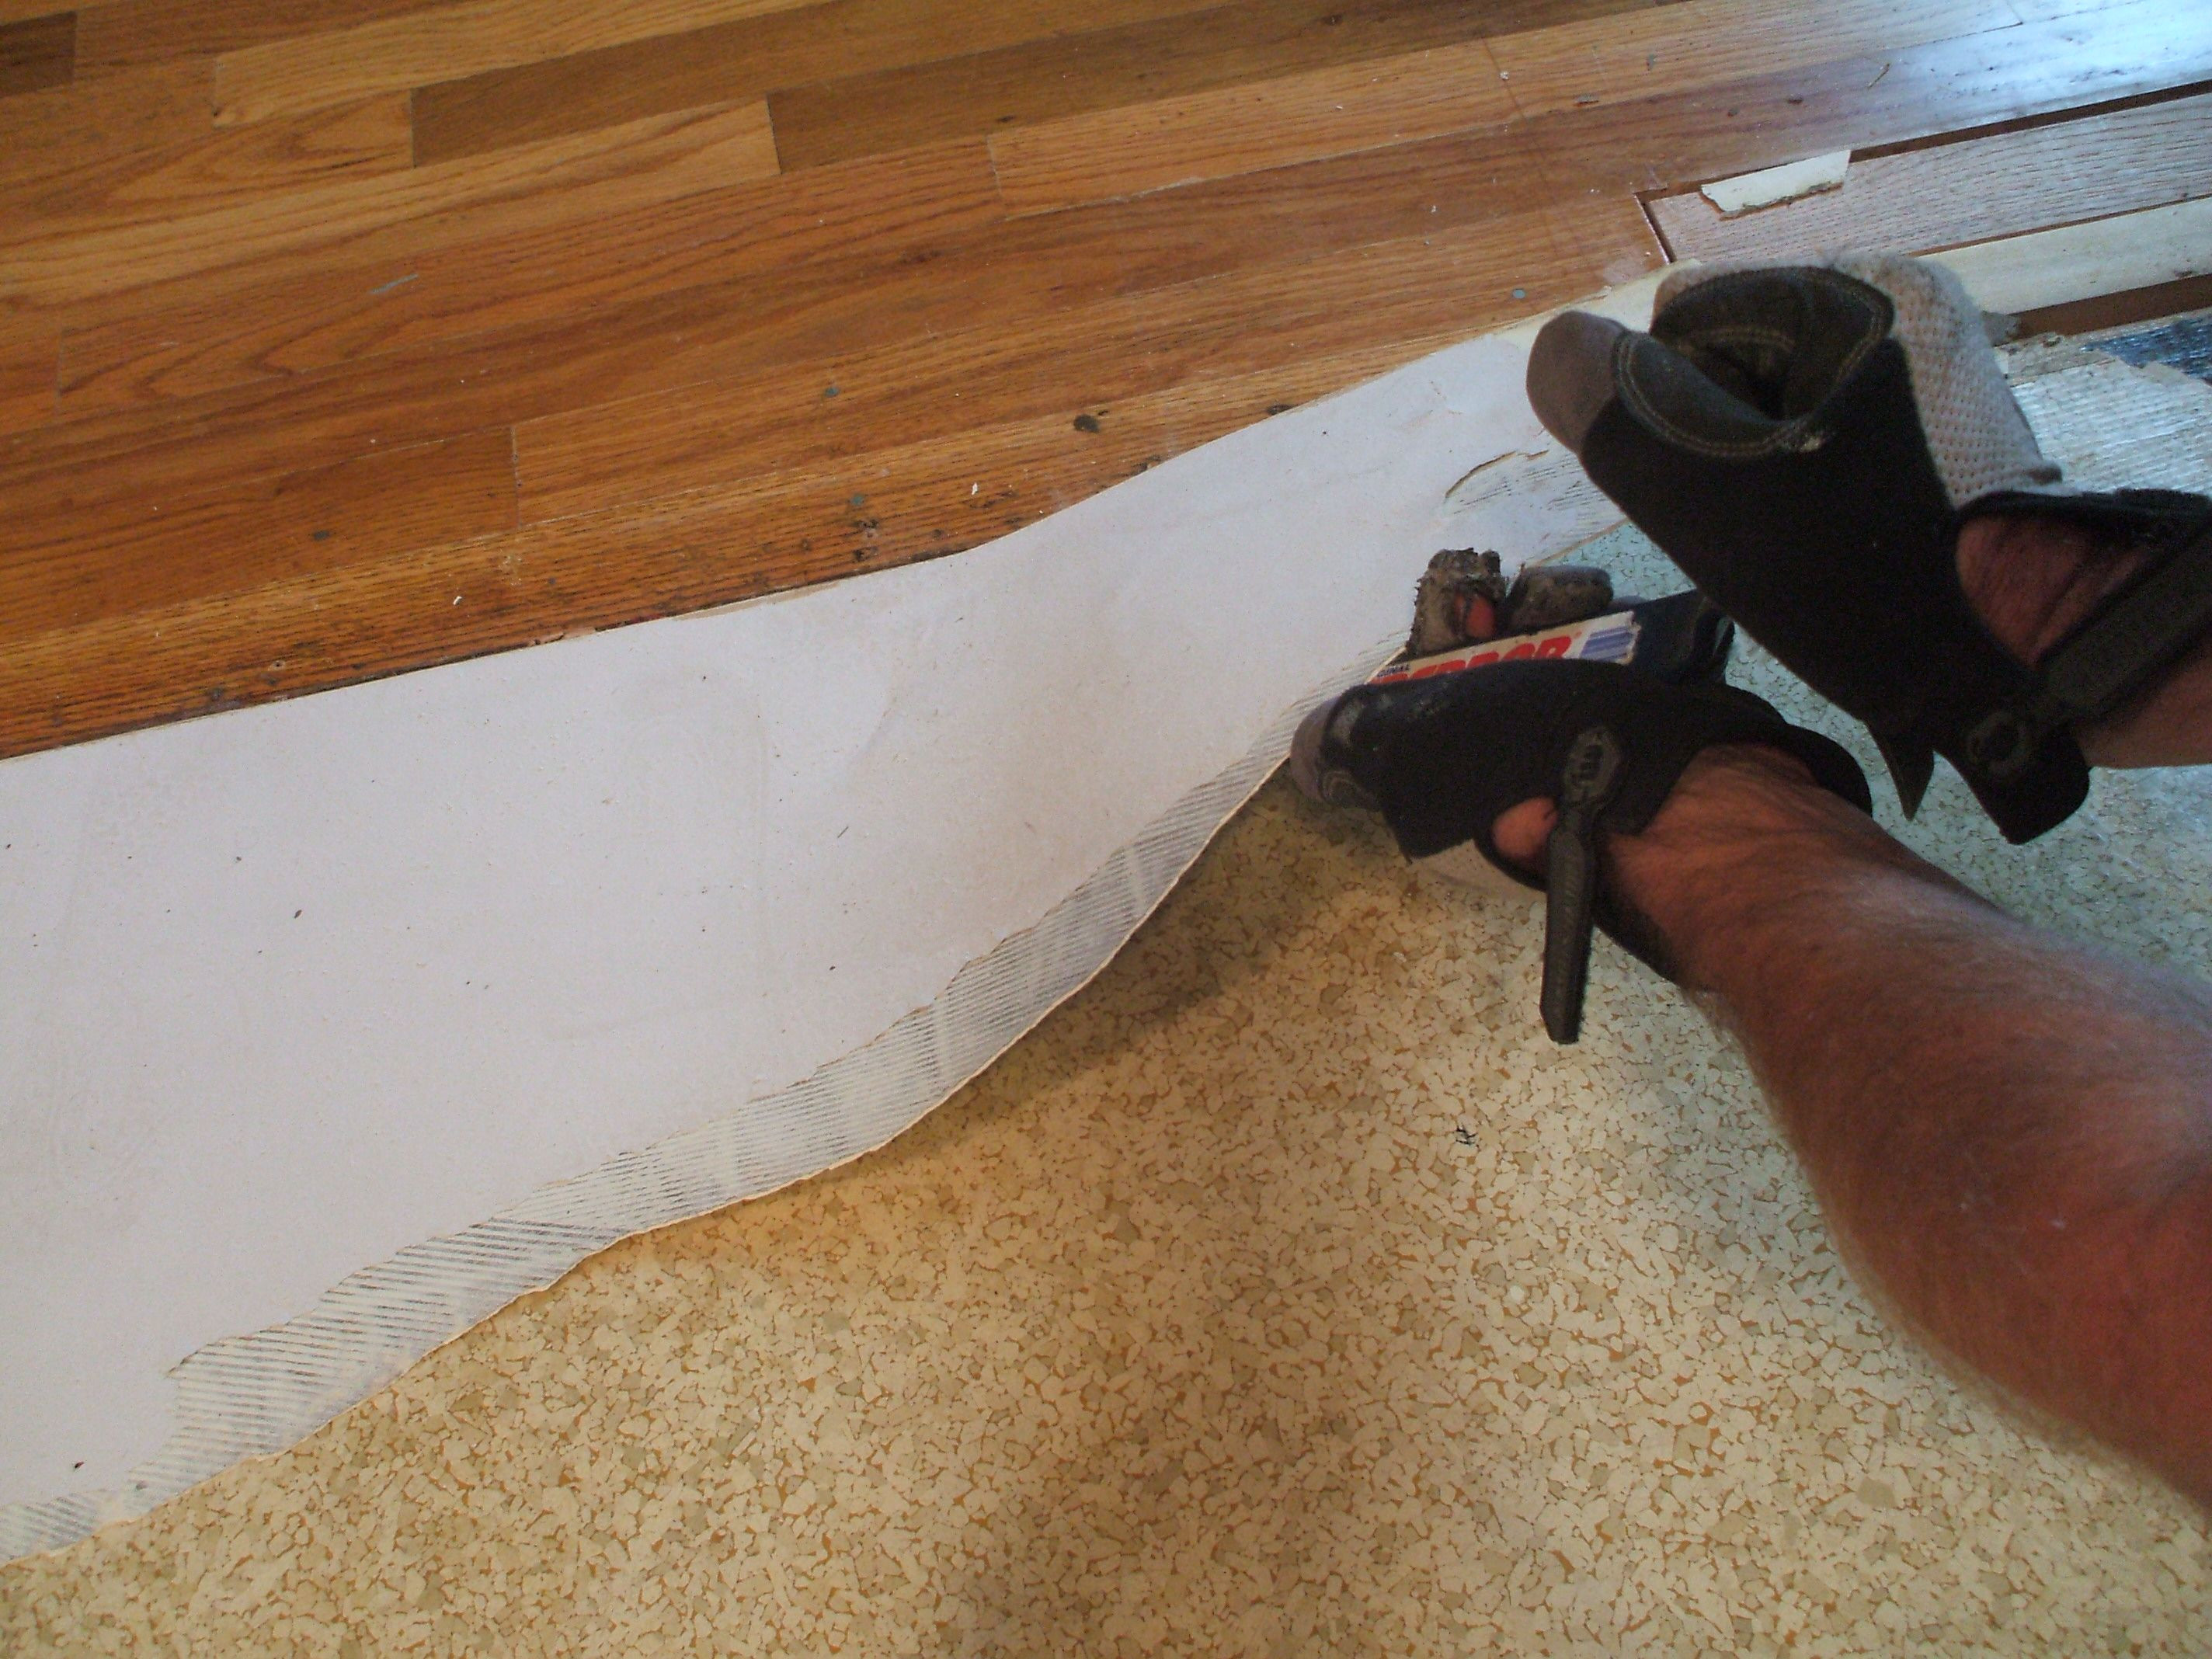 glue down hardwood floor repair of how to remove vinyl flooring with less effort and mess regarding remove vinyl use prybar on easy glued areas 56a49e3e5f9b58b7d0d7ddce jpg